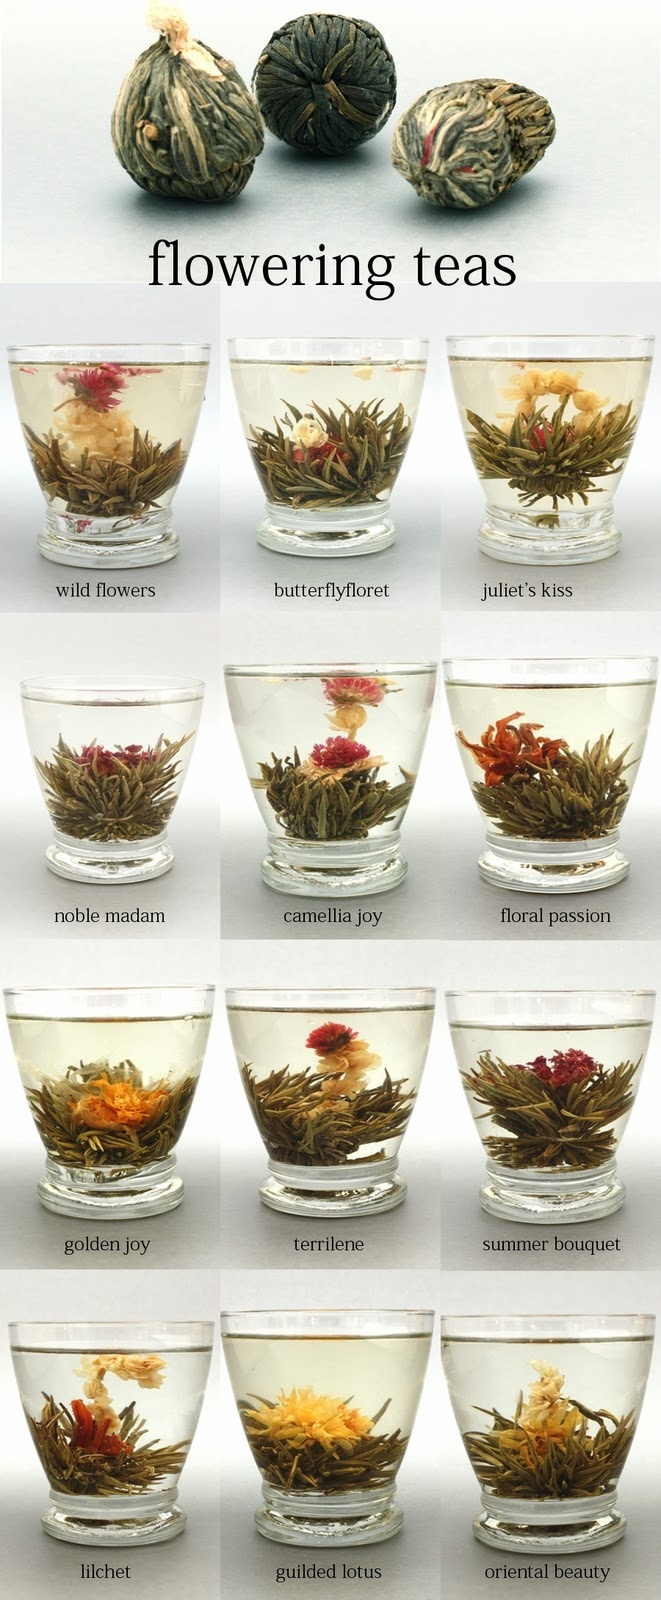 as much as I love tea mine never looks this amazing.